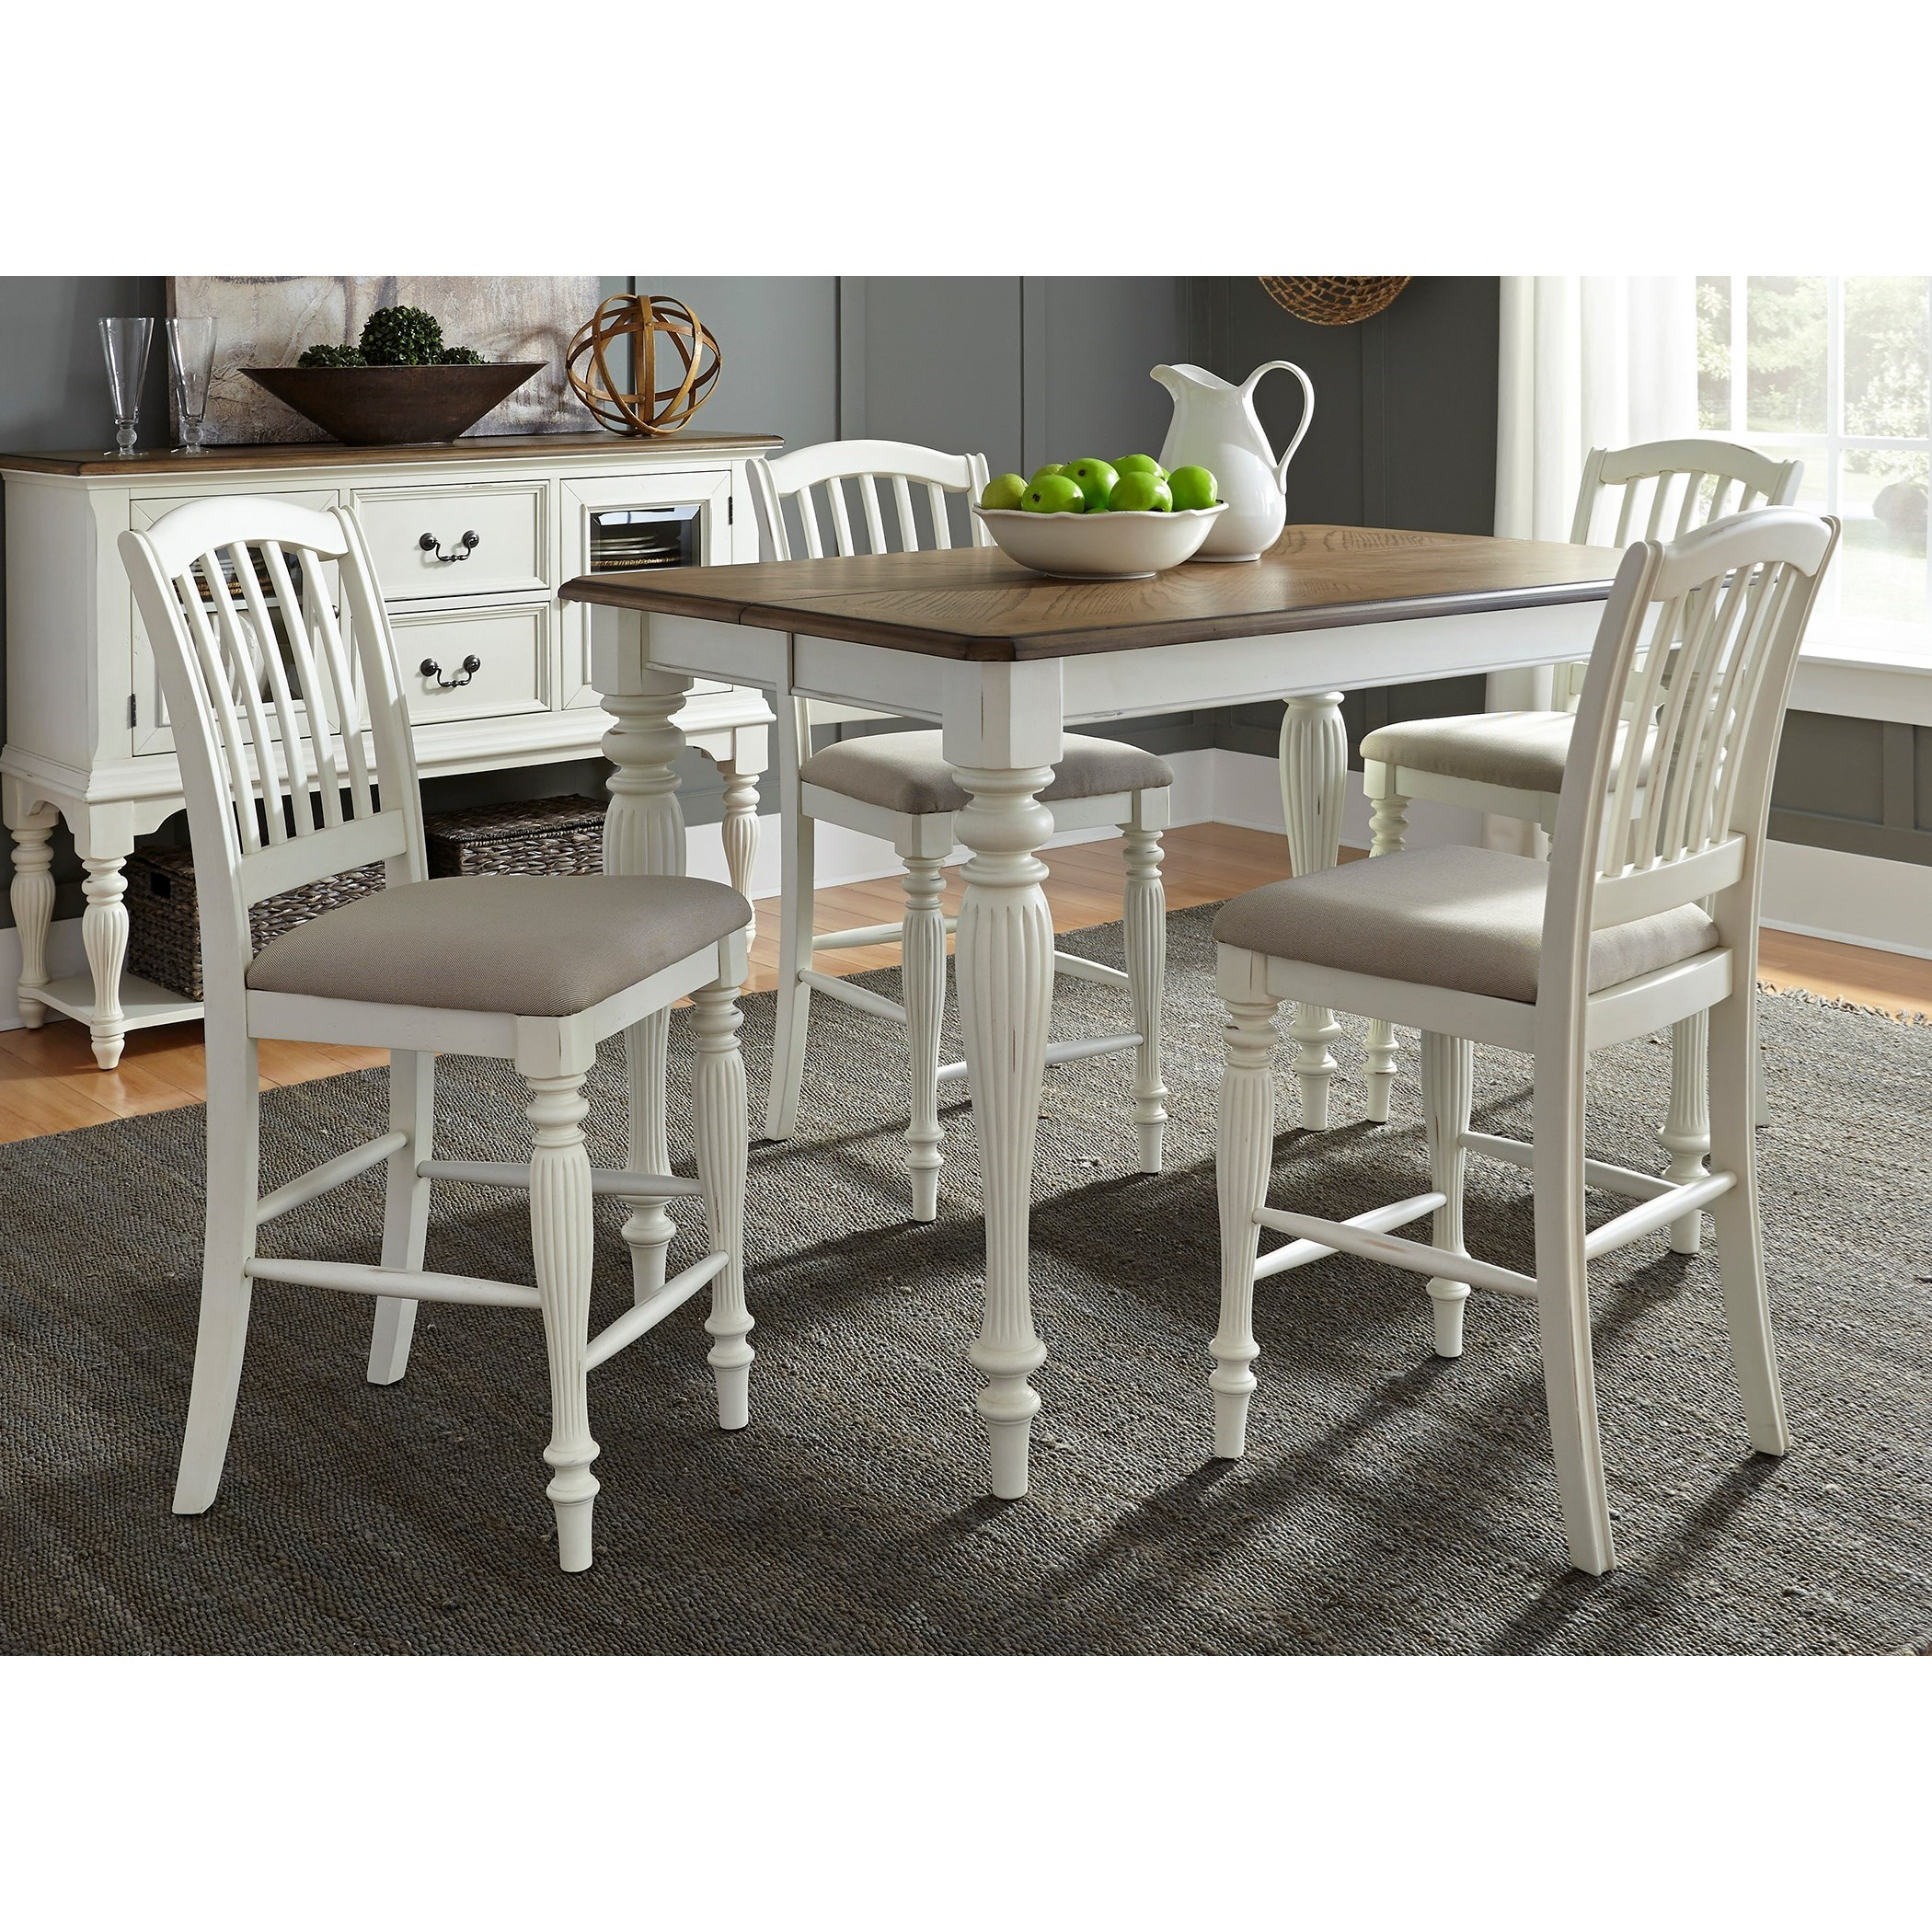 Liberty Furniture Cumberland Creek Dining 334 Gt5454 Gathering Table With Leaf Furniture And